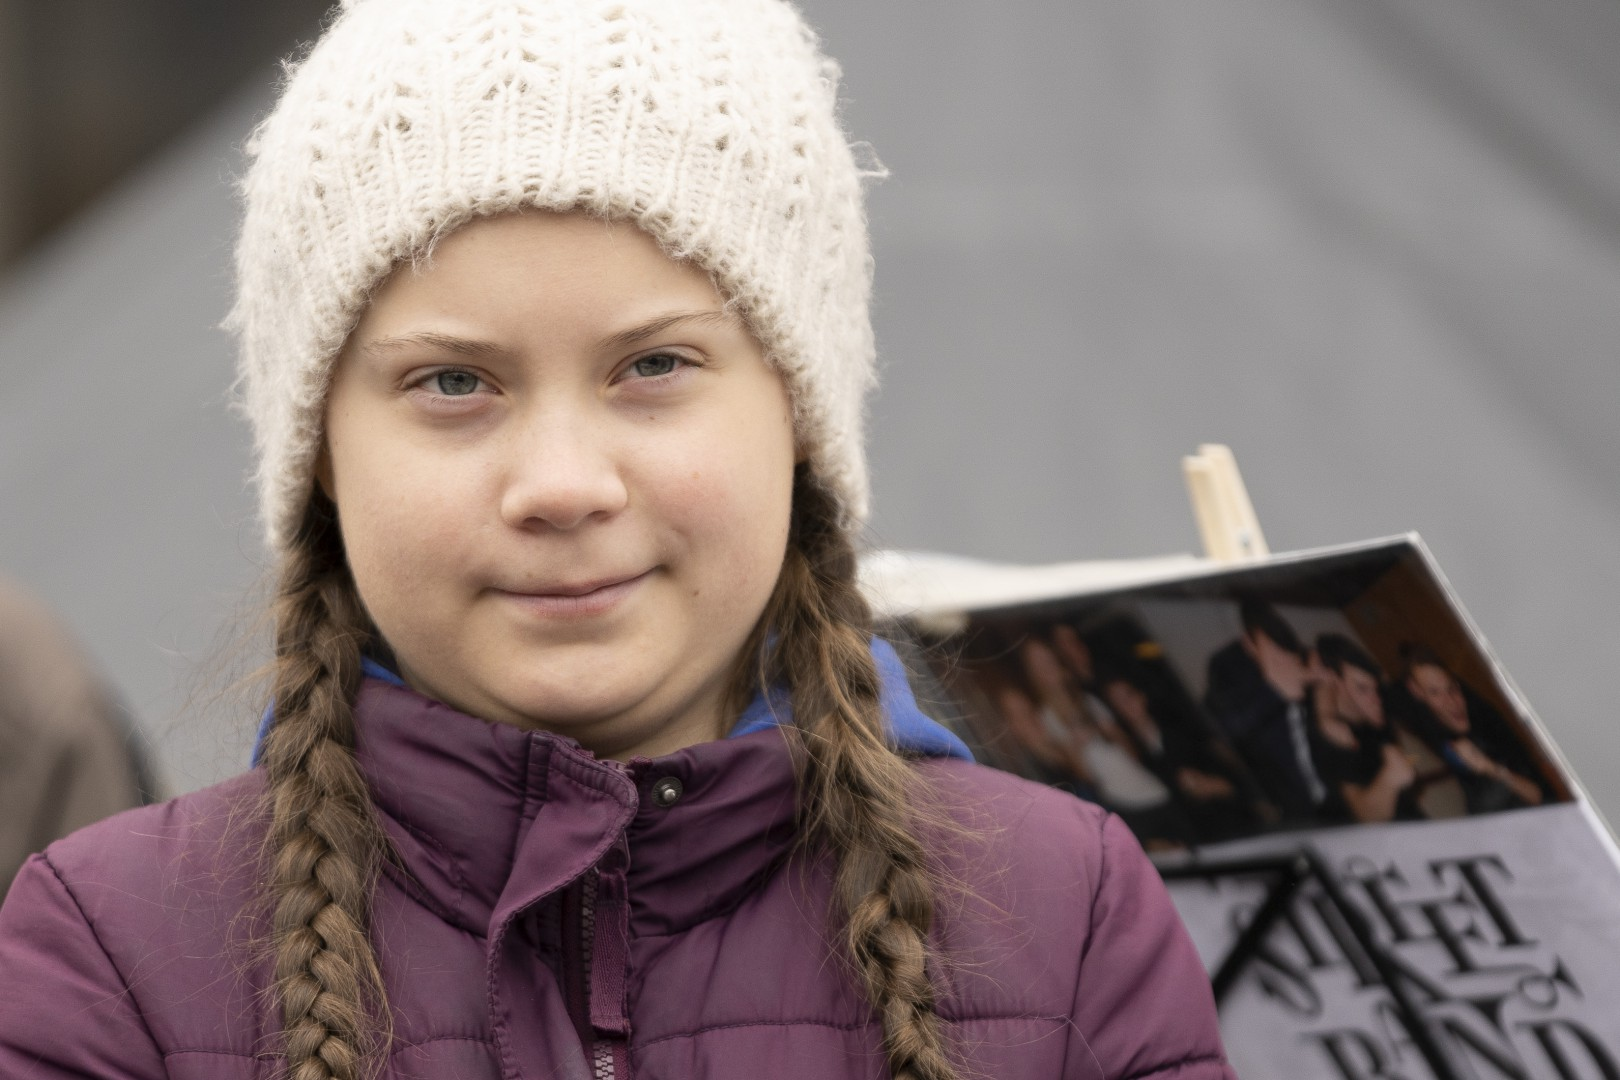 Fridays for Future - Swedish climate activist Greta Thunberg attends rally in Hamburg Germany, March 1, 2019. LaPresse Only italy ddp_09829344 *** Local Caption *** 10139323